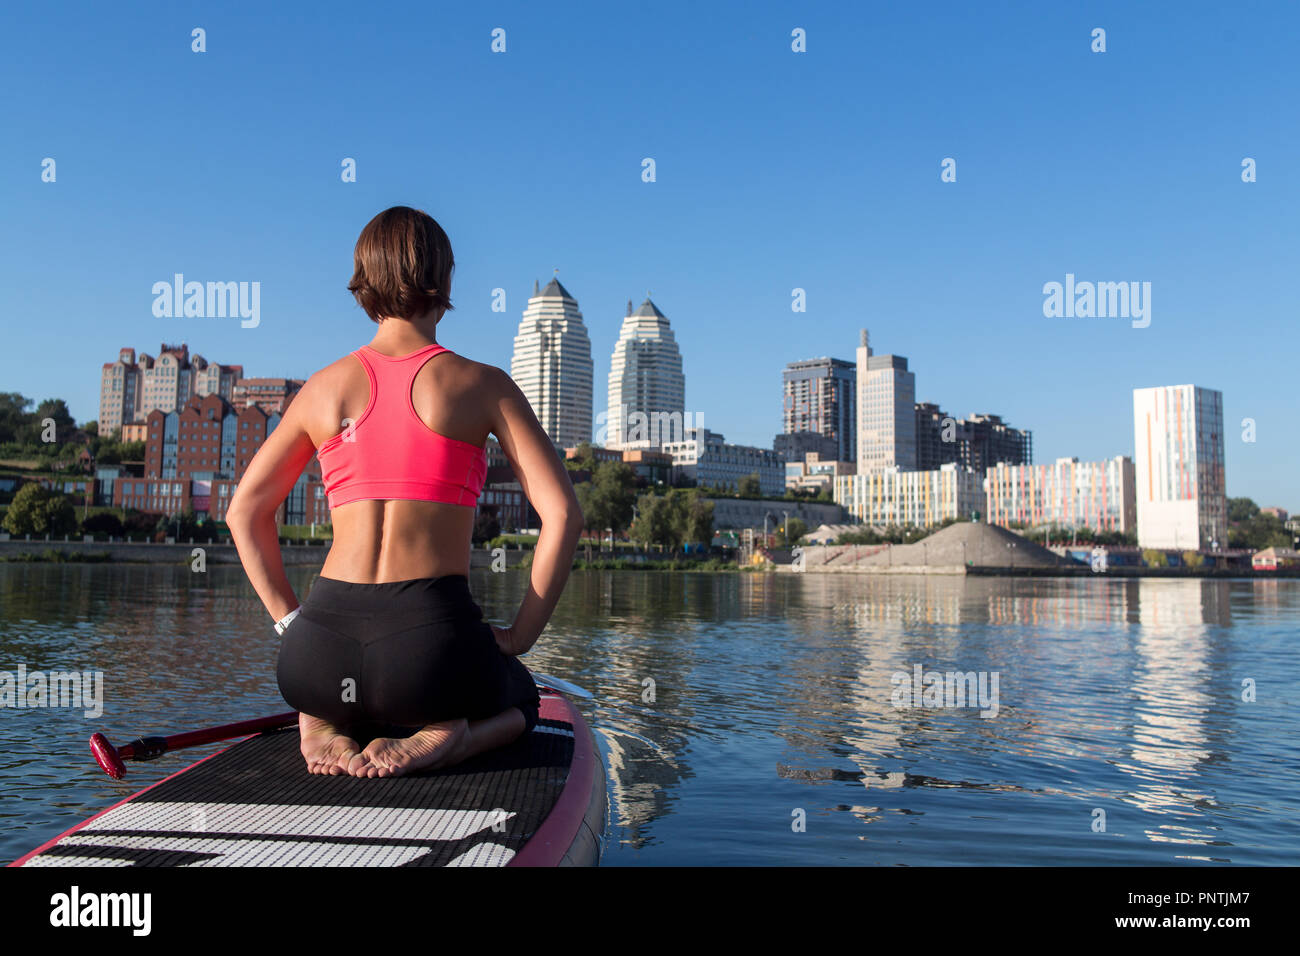 Woman practicing sitting variation of yoga pose on paddle board Stock Photo